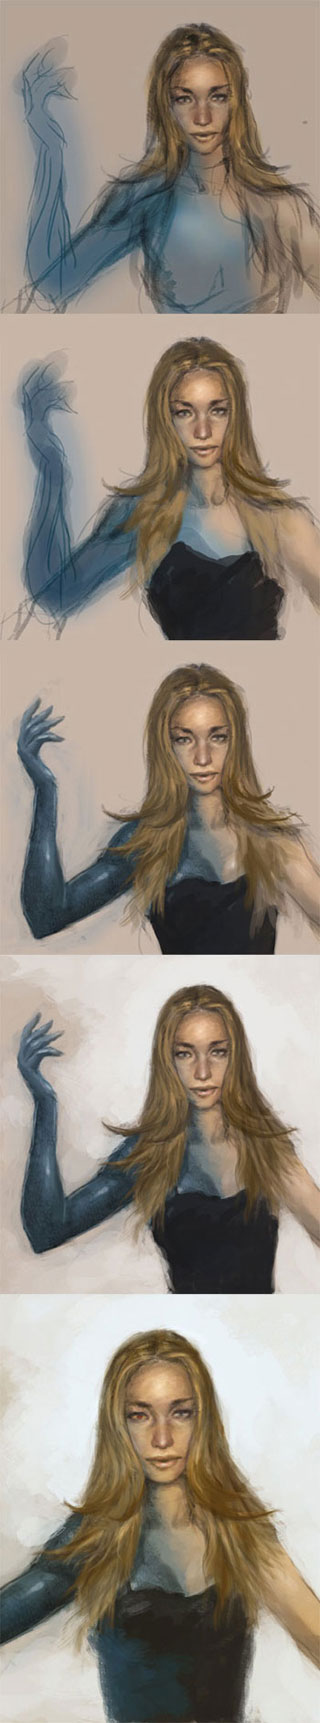 digital painting tutorial face and hair